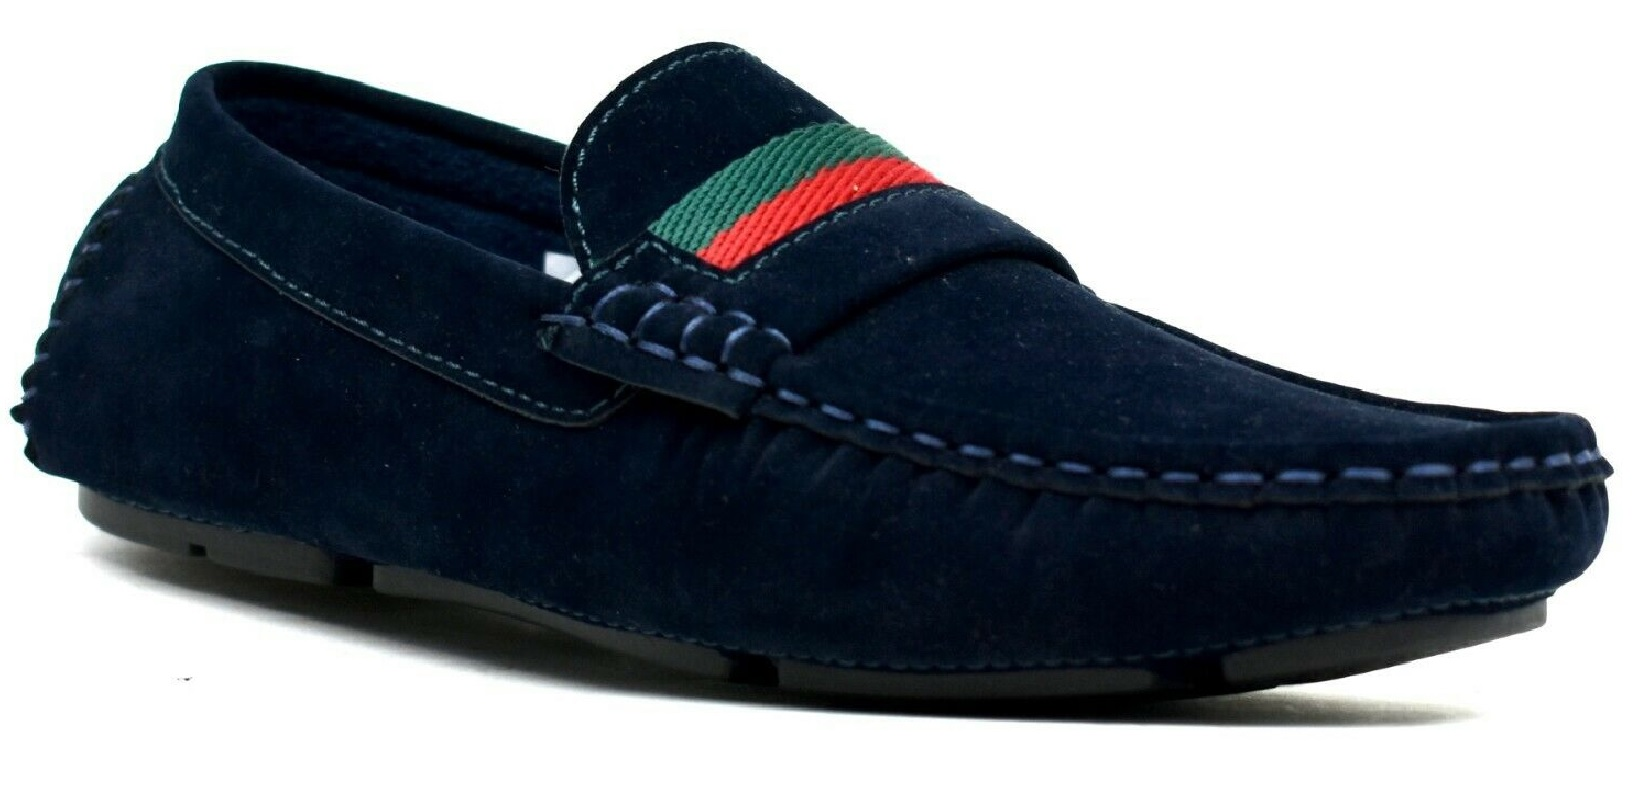 MENS-SLIP-ON-BOYS-CASUAL-DESIGNER-MOCASSIN-BOAT-LOAFERS-DRIVING-DESK-SHOES-SIZE thumbnail 5